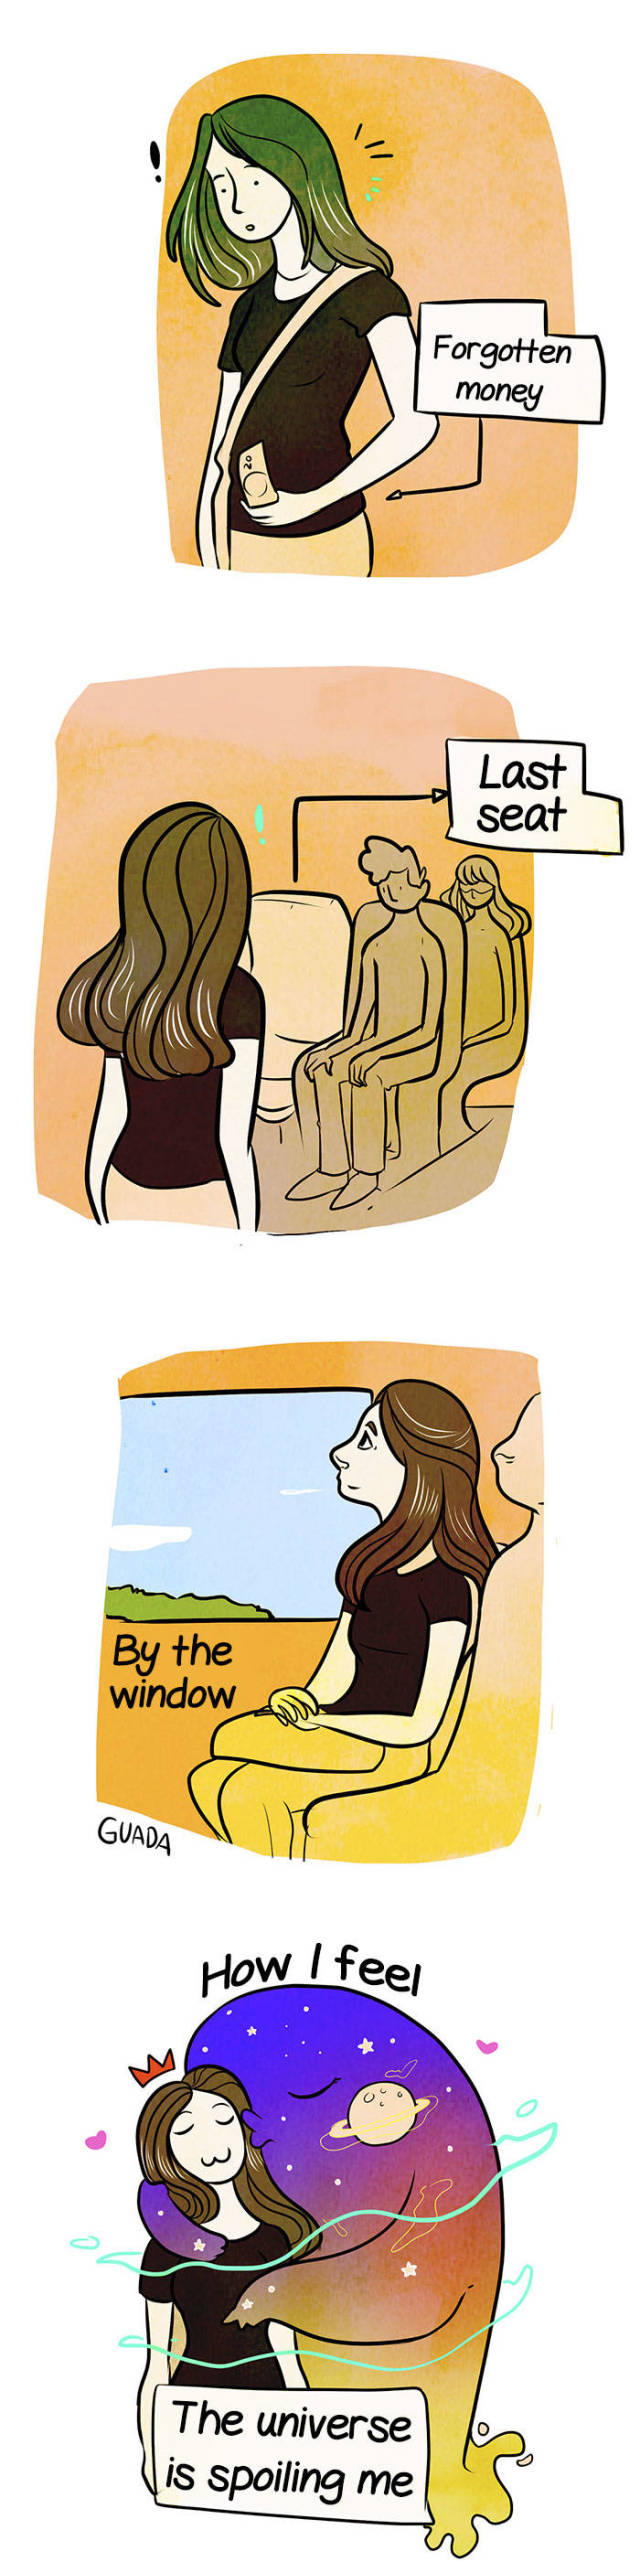 Comics Filled With Simple But Deep Thoughts